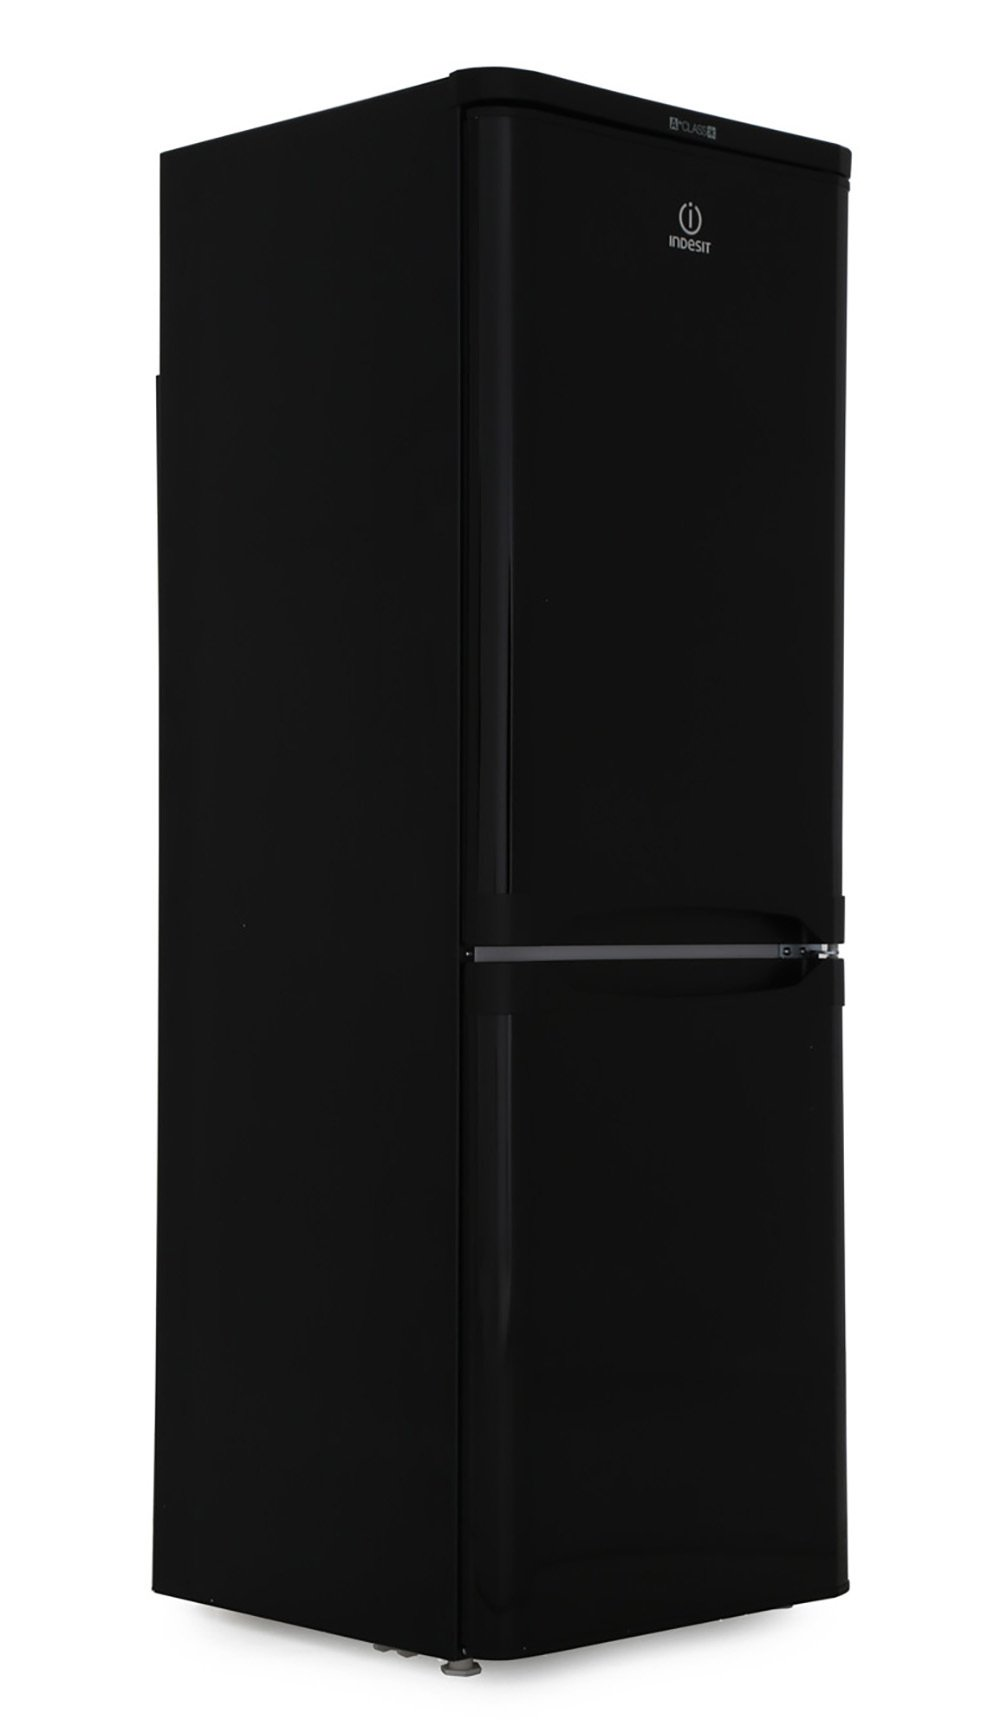 Indesit IBD 5515 B UK Low Frost Fridge Freezer